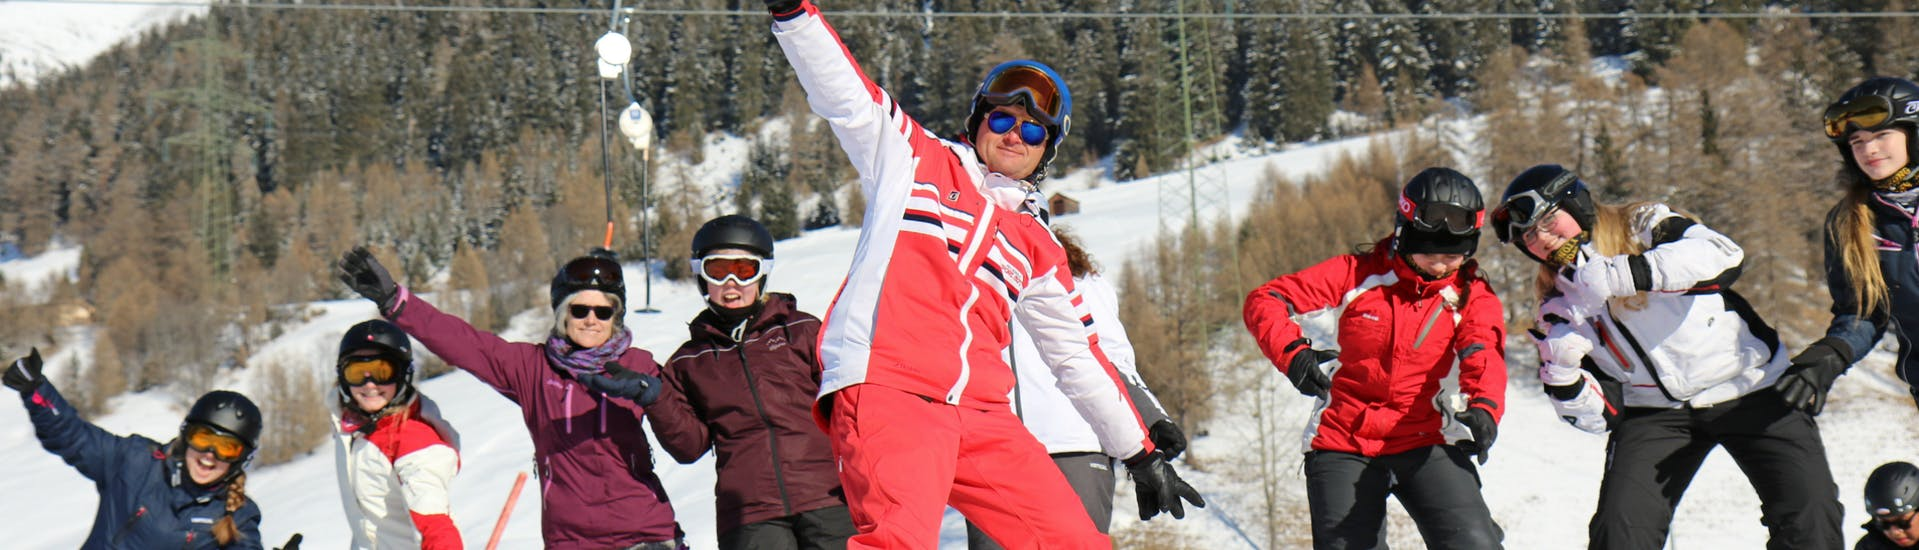 Teens Ski Lessons (8-14 y.) for Advanced Skiers with Skischule Pfunds - Hero image